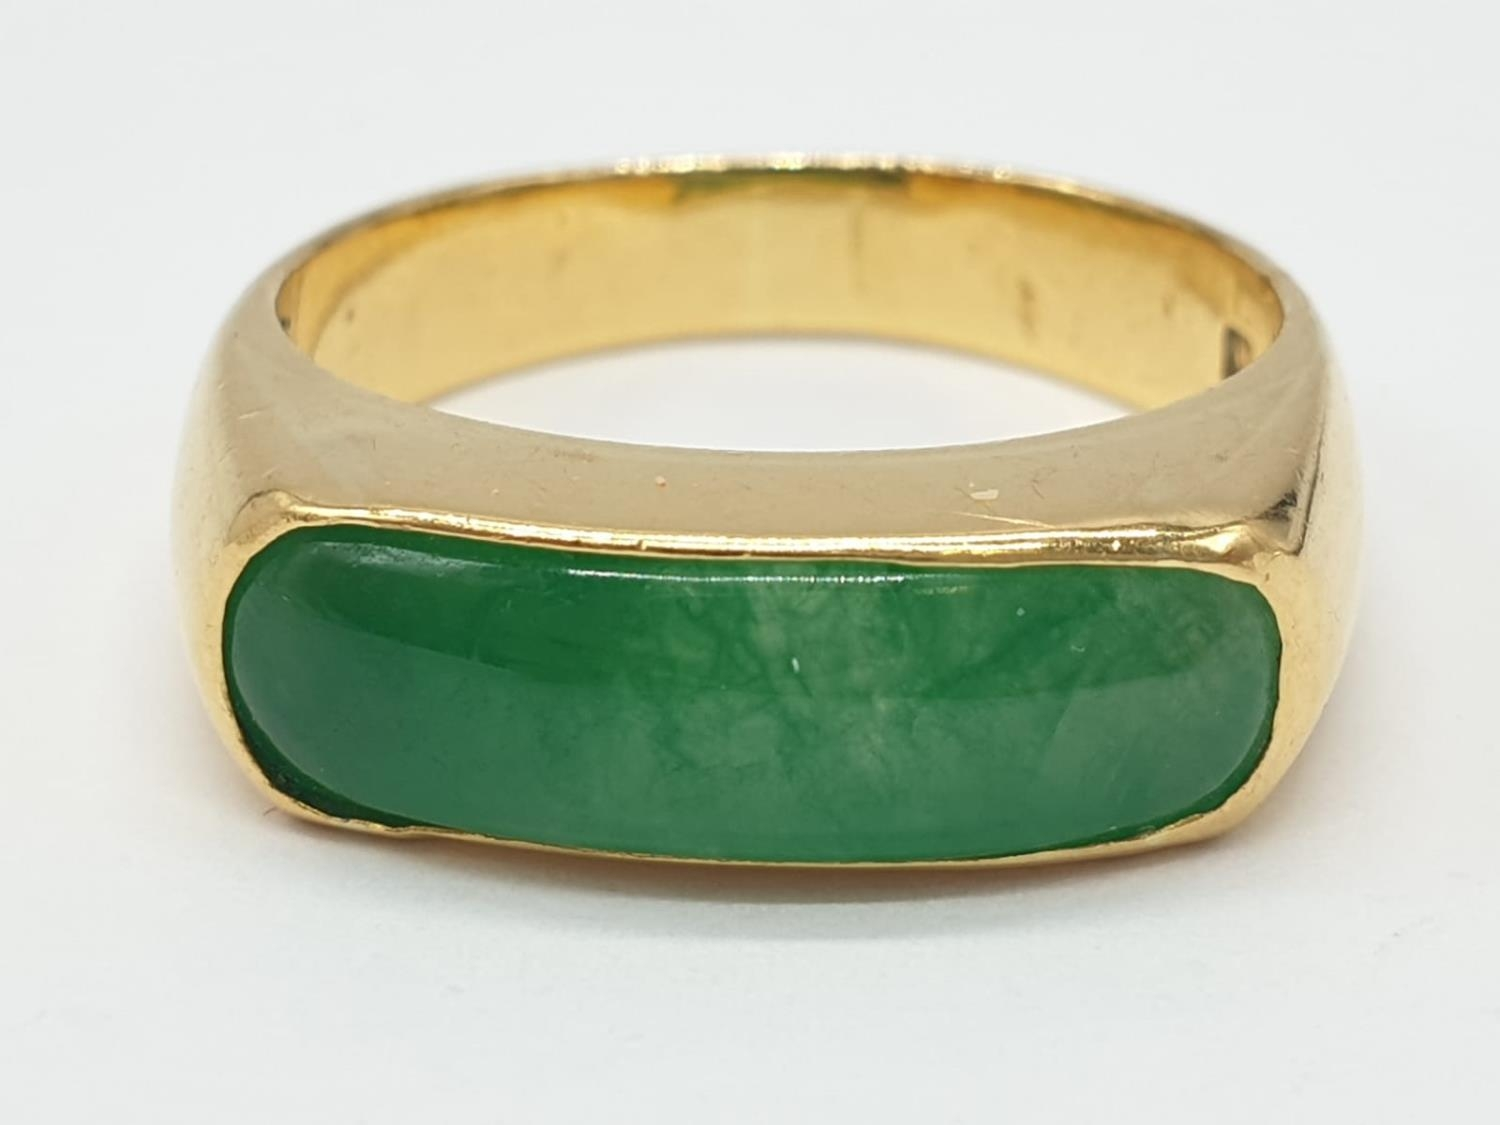 22ct gold ring with natural jade stone. 7.7g in weight and size T.